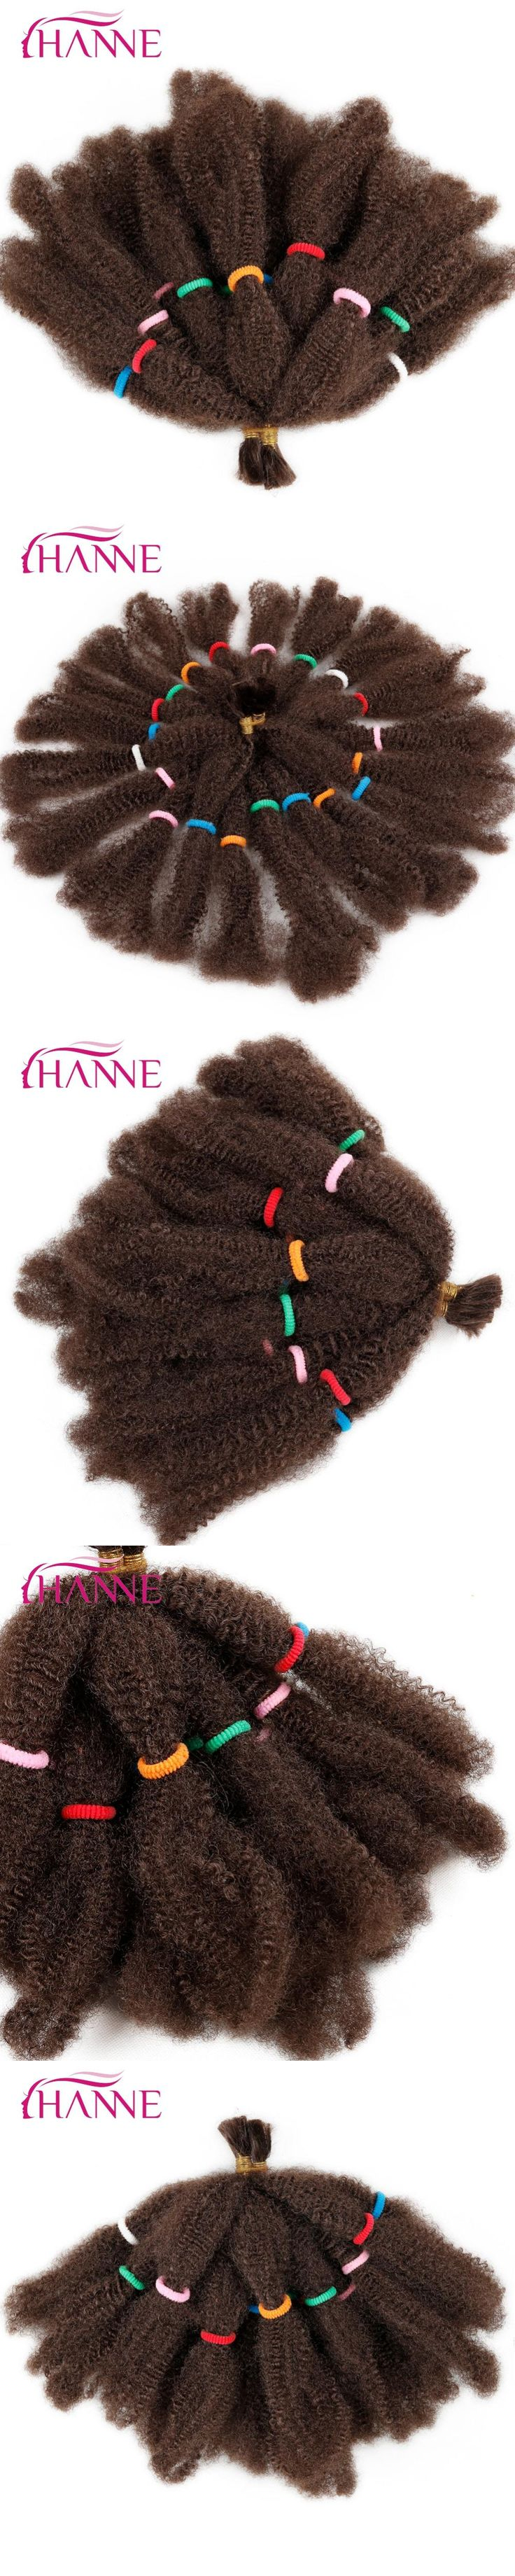 HANNE Afro Extensions Bulk Hair Small Kinky Curly 12 Inch Brown Or Ombre Mixed 1B#BUG Pre Braided Hair Extension Synthetic Weave